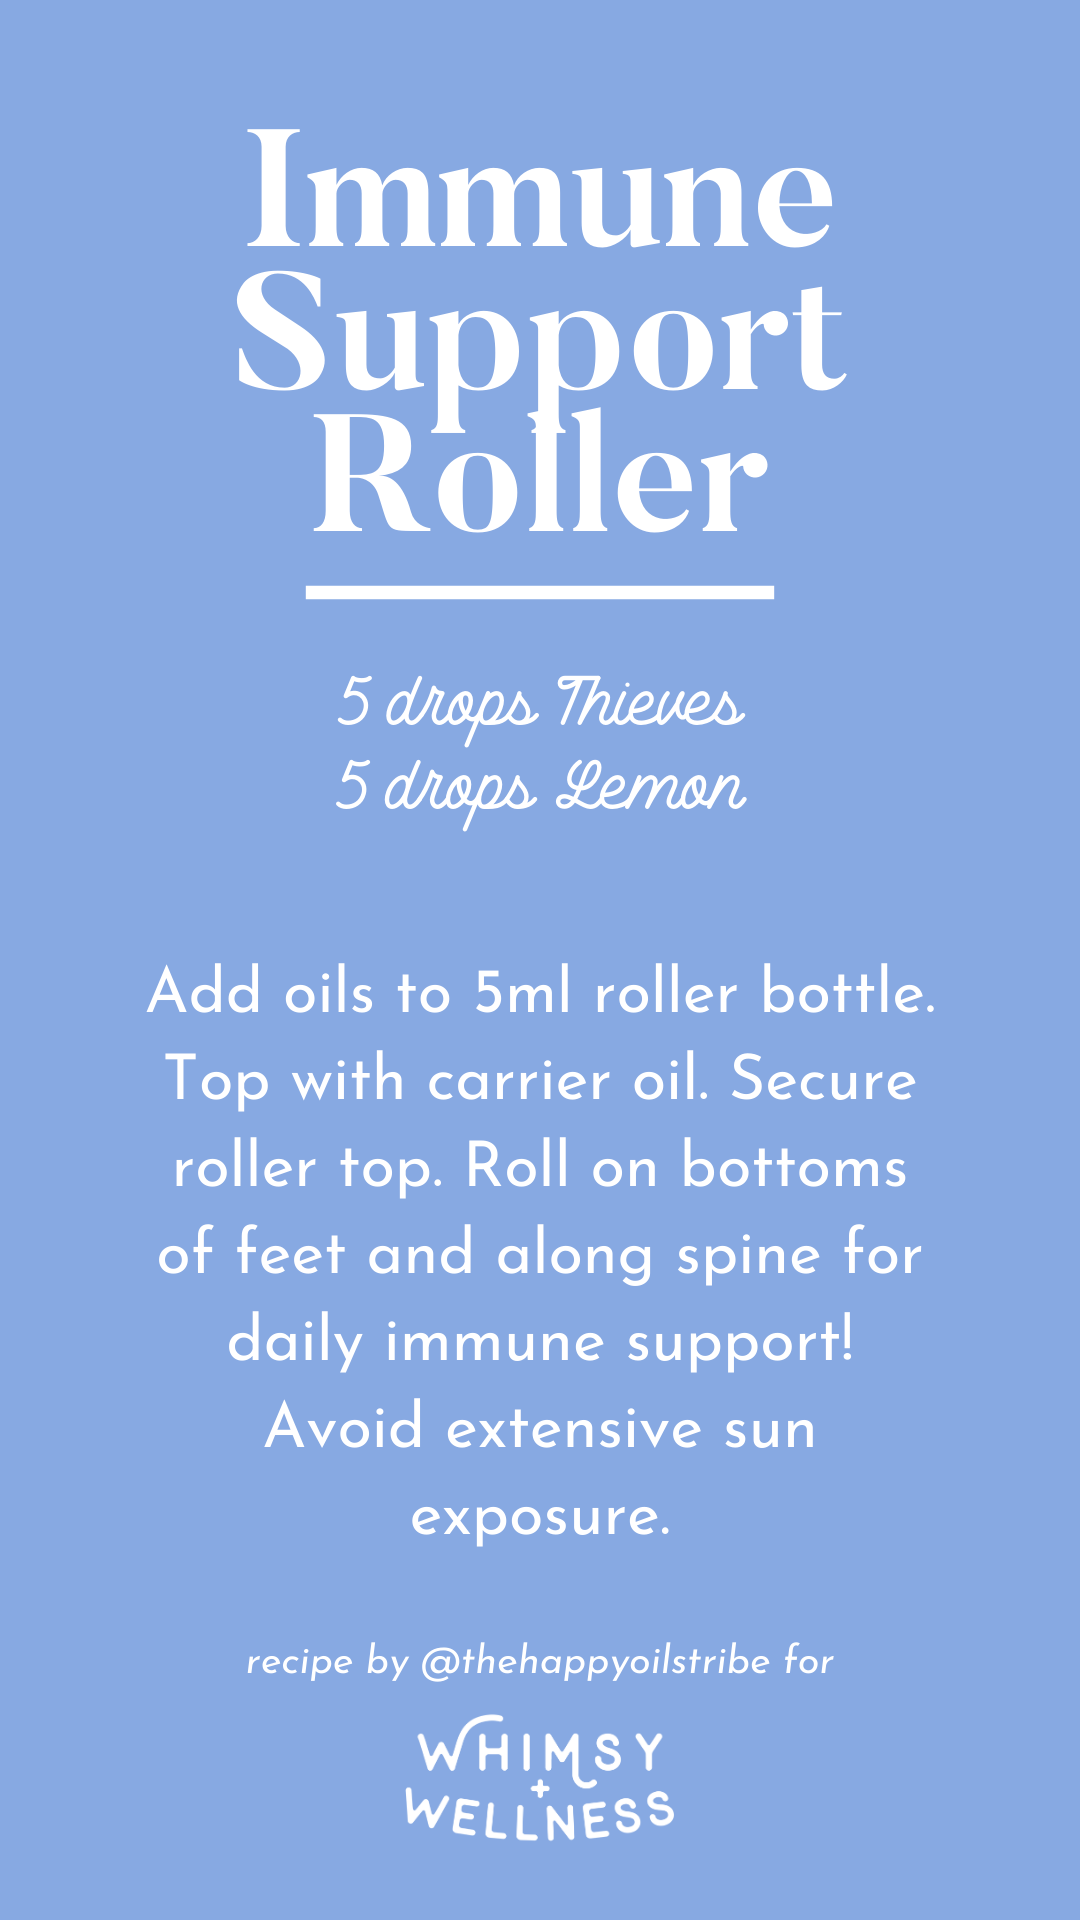 Immune support roller using Young Living essential oils